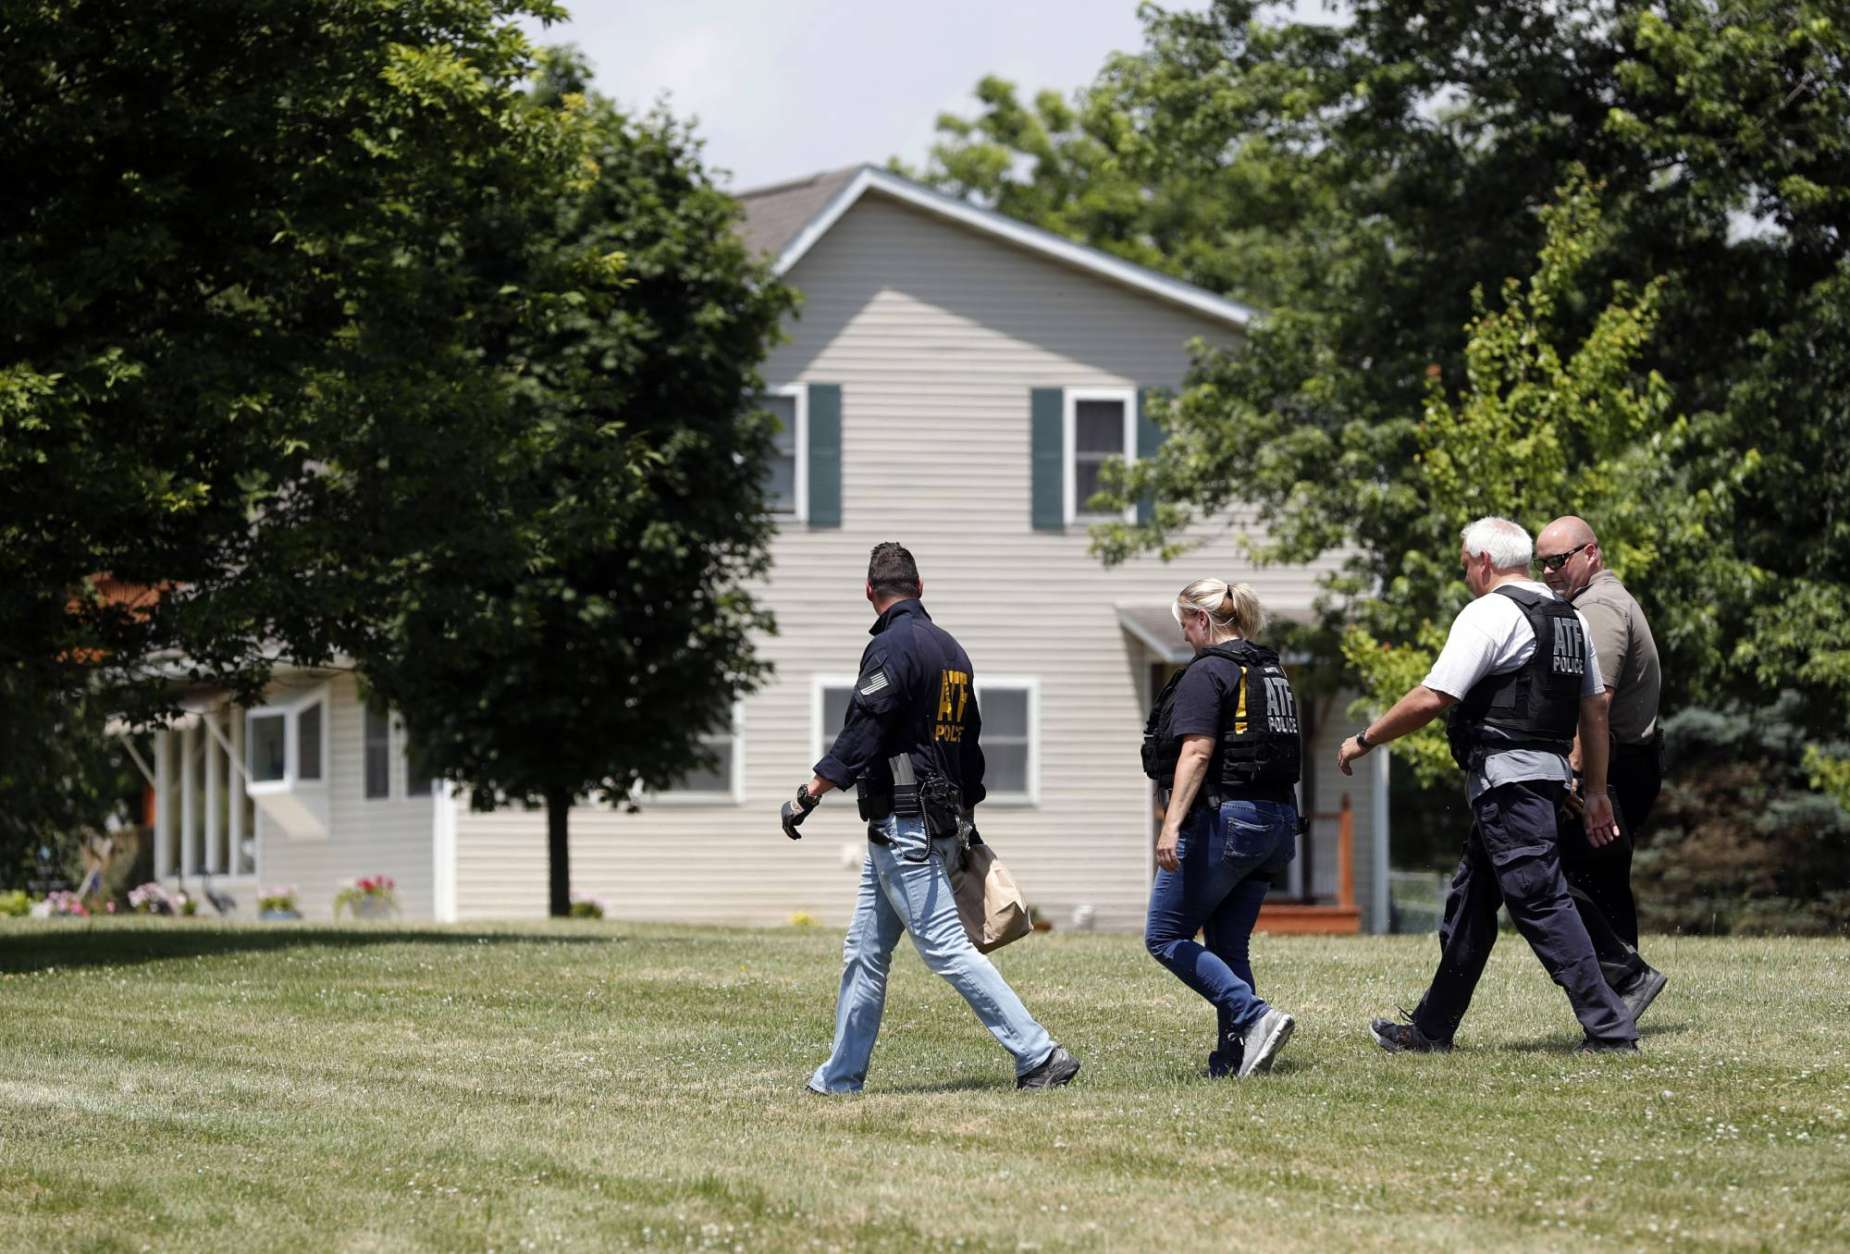 Law enforcement investigate outside the home of James T. Hodgkinson on Wednesday, June 14, 2017, in Belleville, Ill. Officials said Hodgkinson has been identified as the man who opened fire on Republican lawmakers at a congressional baseball practice Wednesday morning in Alexandria, Va. (AP Photo/Jeff Roberson)